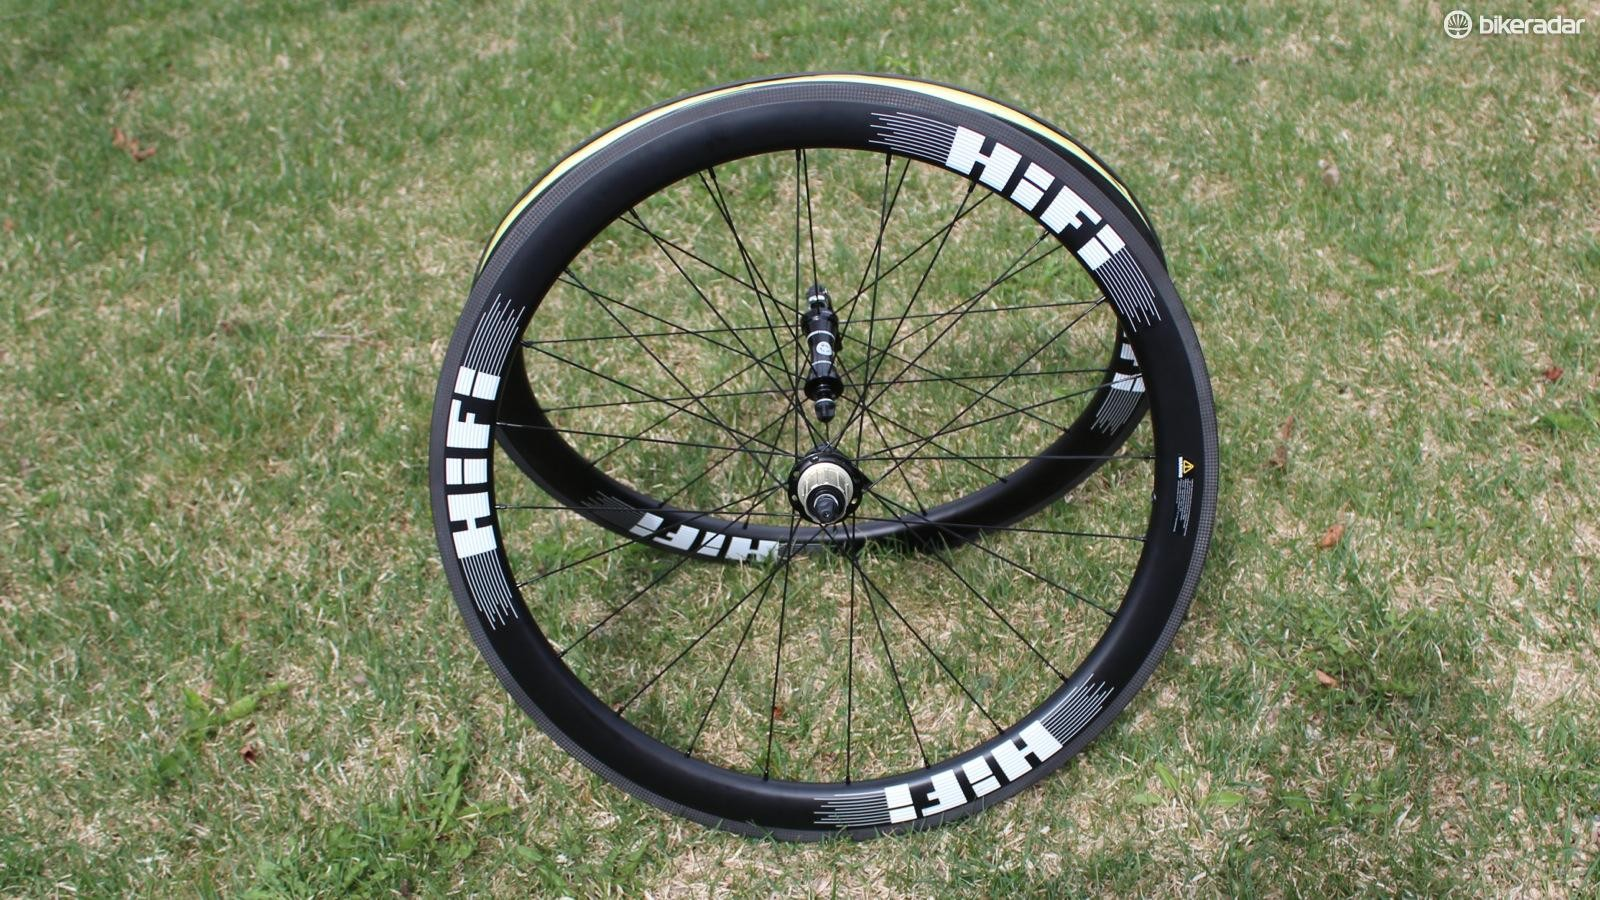 The HiFi Hit Single Carbon Clinchers are 50mm tubeless wheels